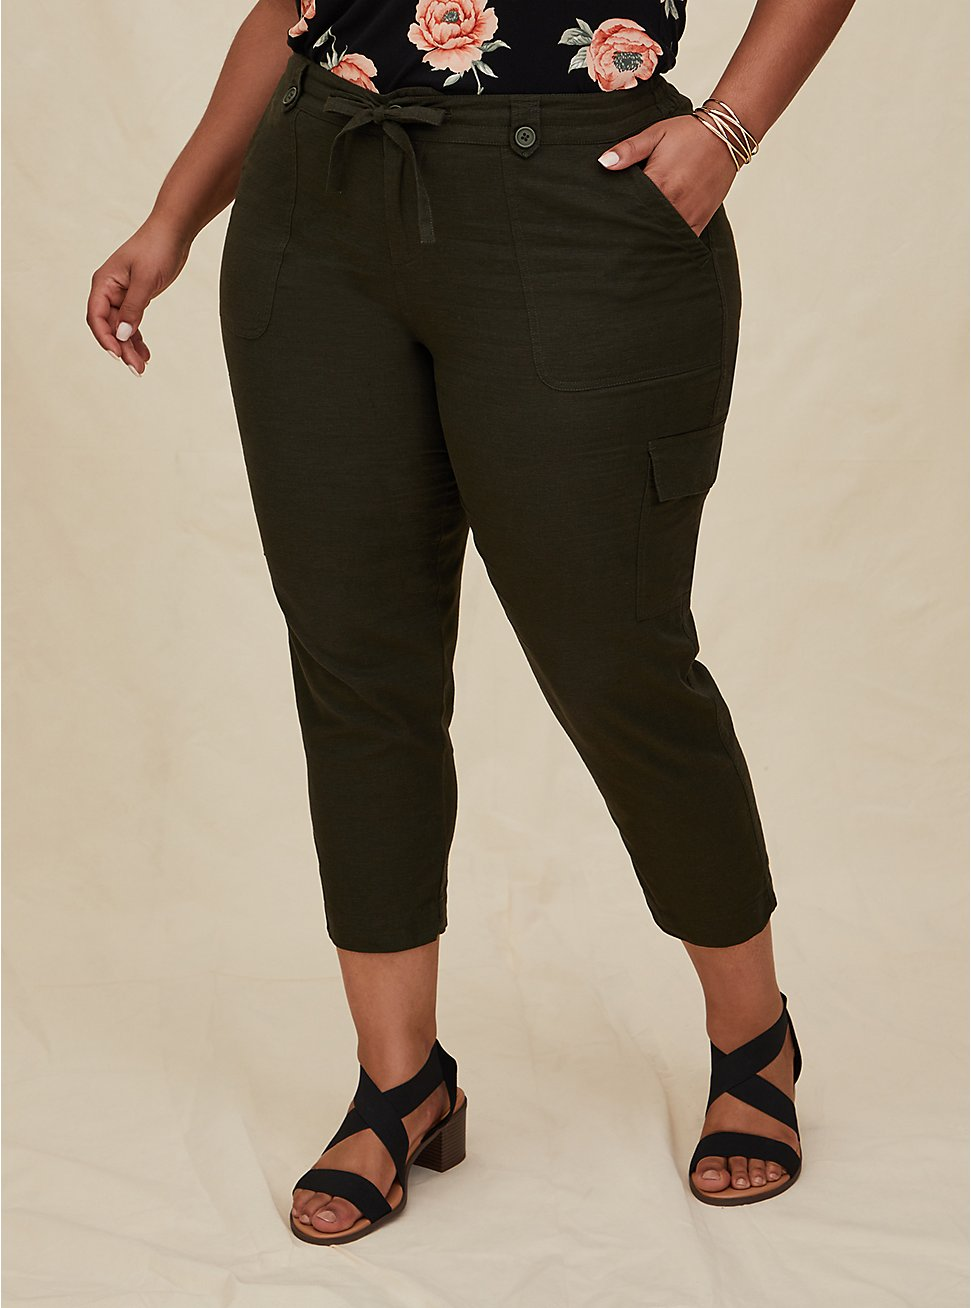 Crop Drawstring Cargo Pant - Linen Olive Green , DEEP DEPTHS, hi-res